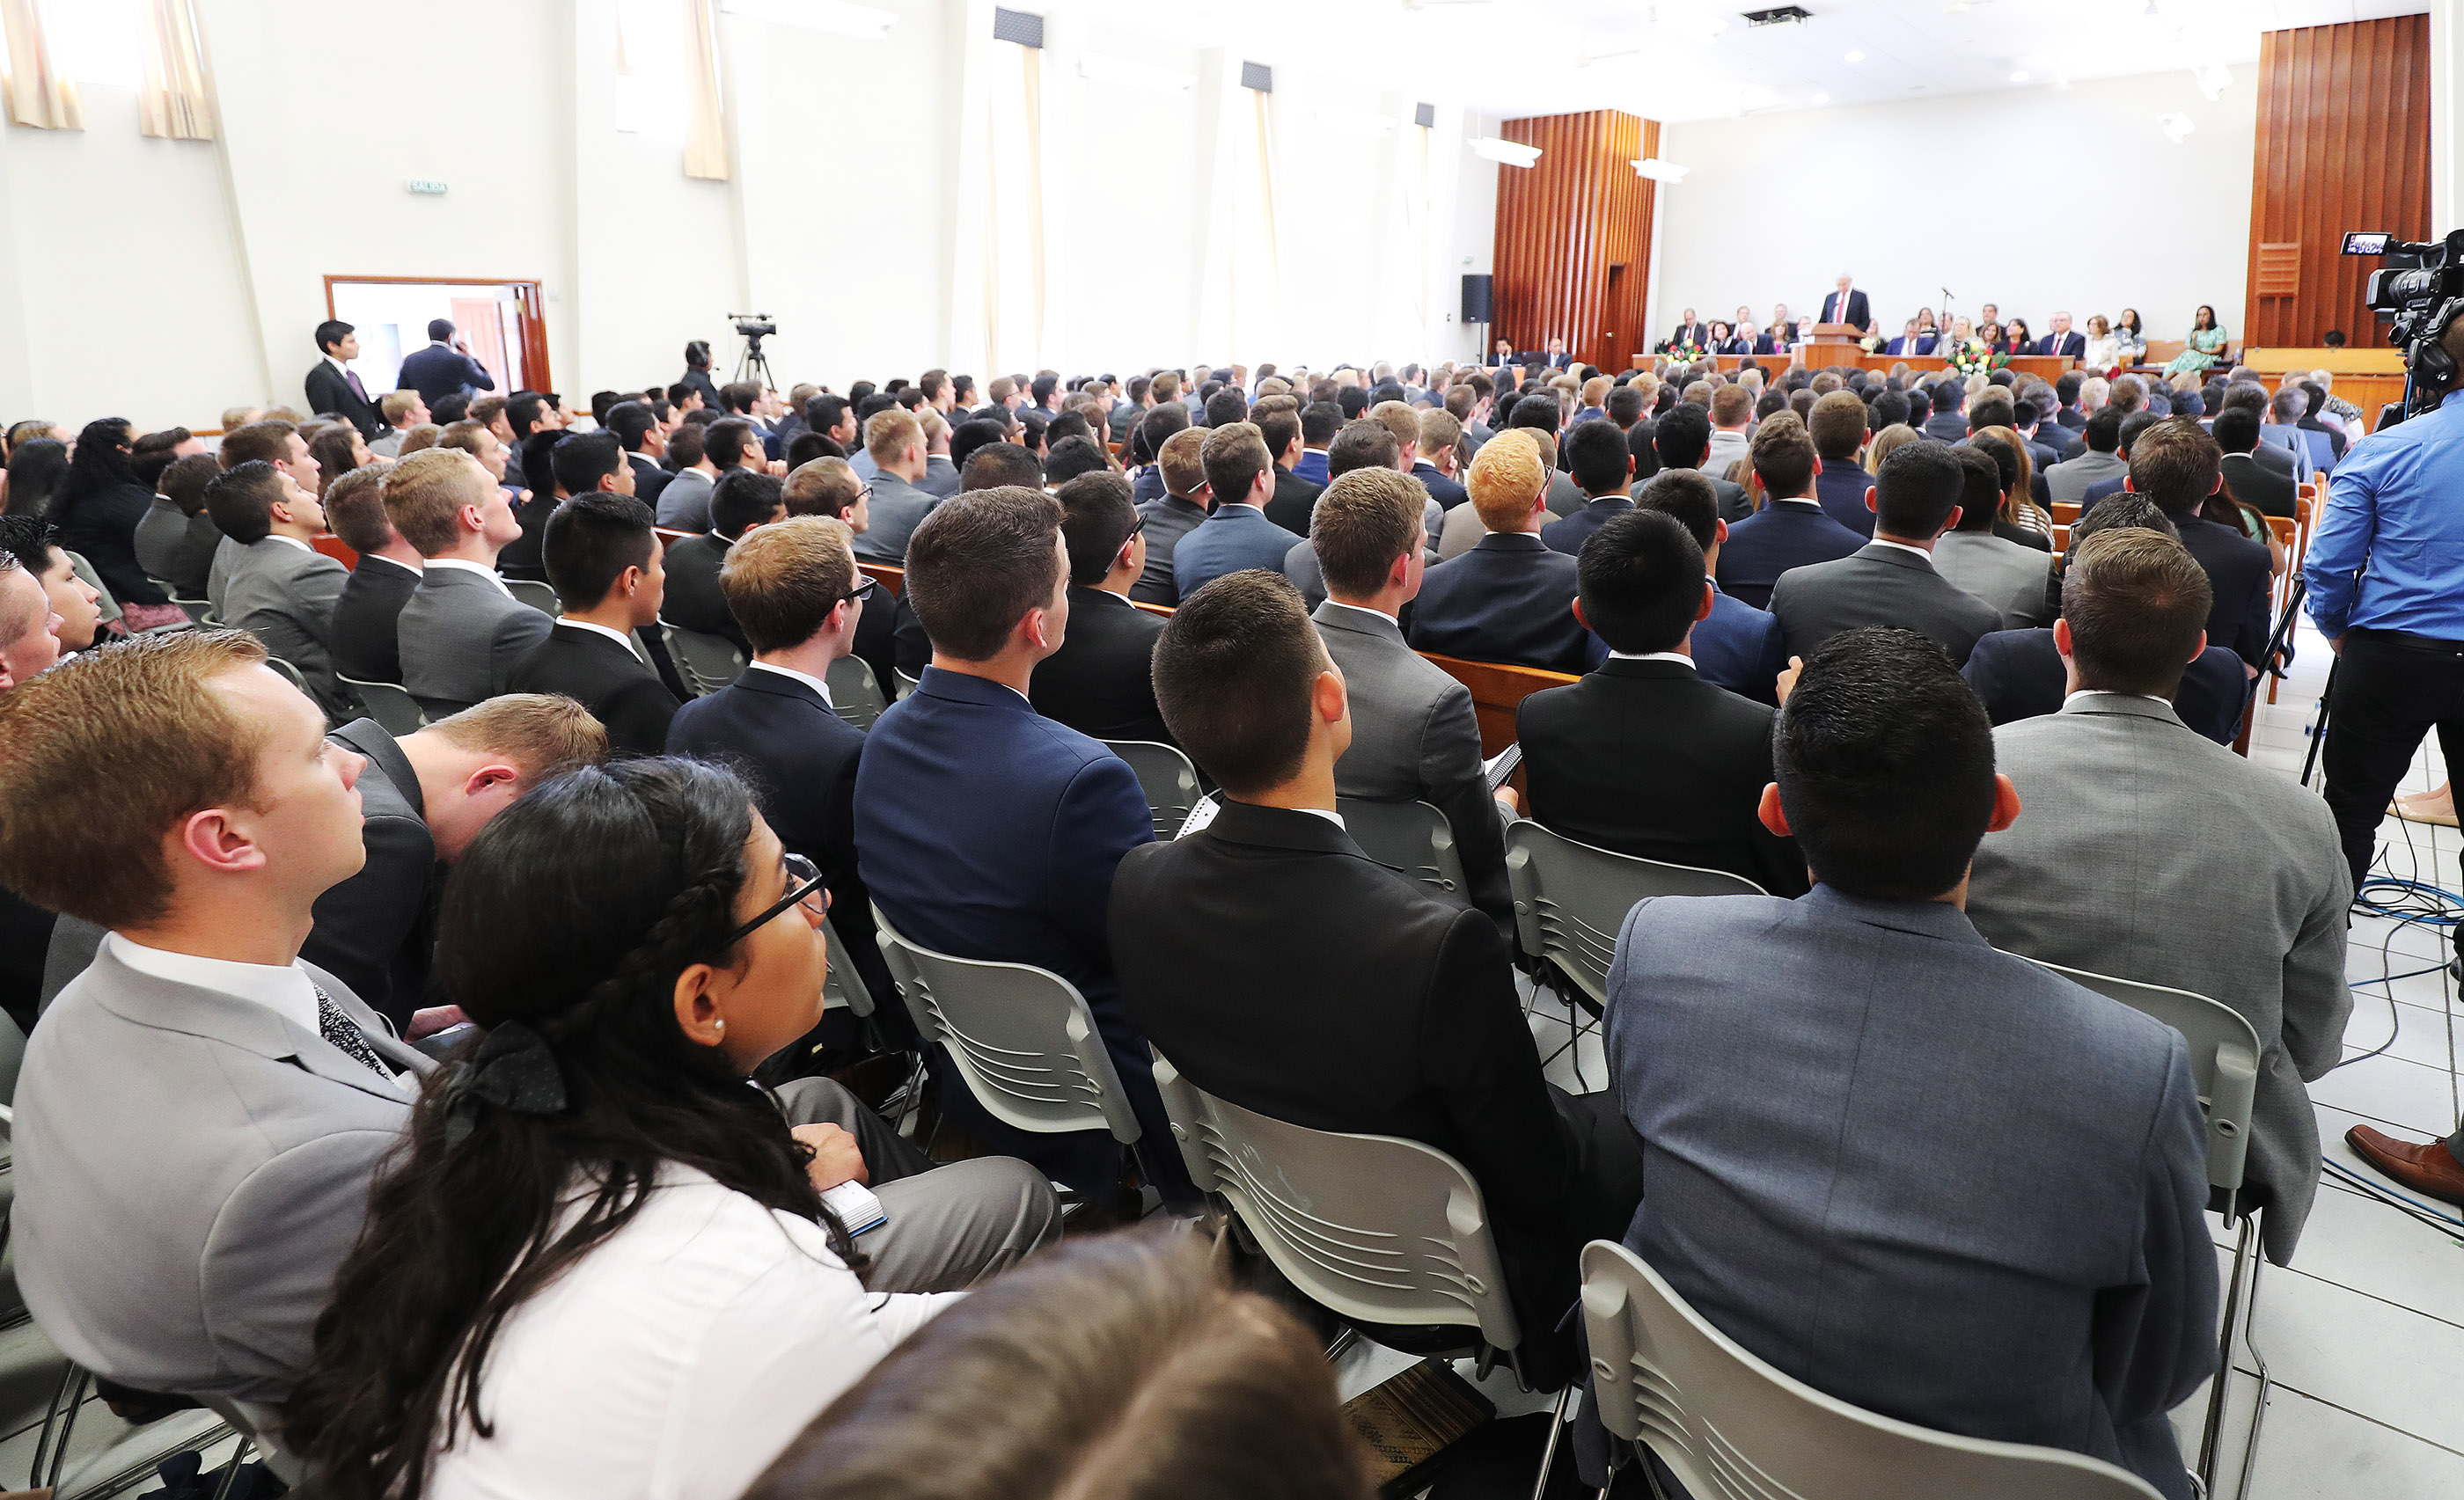 Missionaries listen during meeting with President Russell M. Nelson of The Church of Jesus Christ of Latter-day Saints in Lima, Peru, on Oct. 20, 2018.